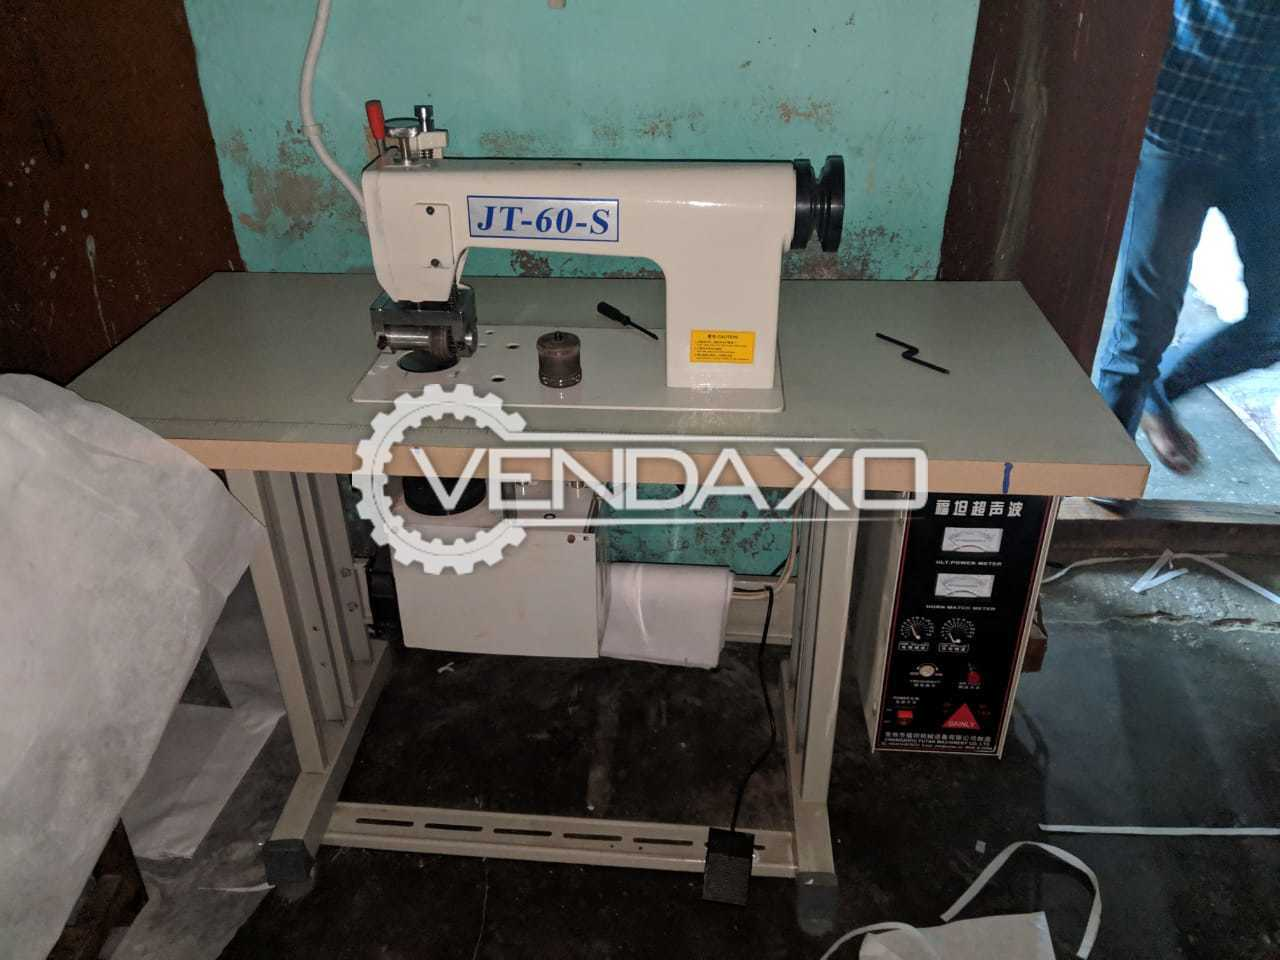 China Make Jt-60-S Ultrasonic Sewing Machine - 3000 Piece per day